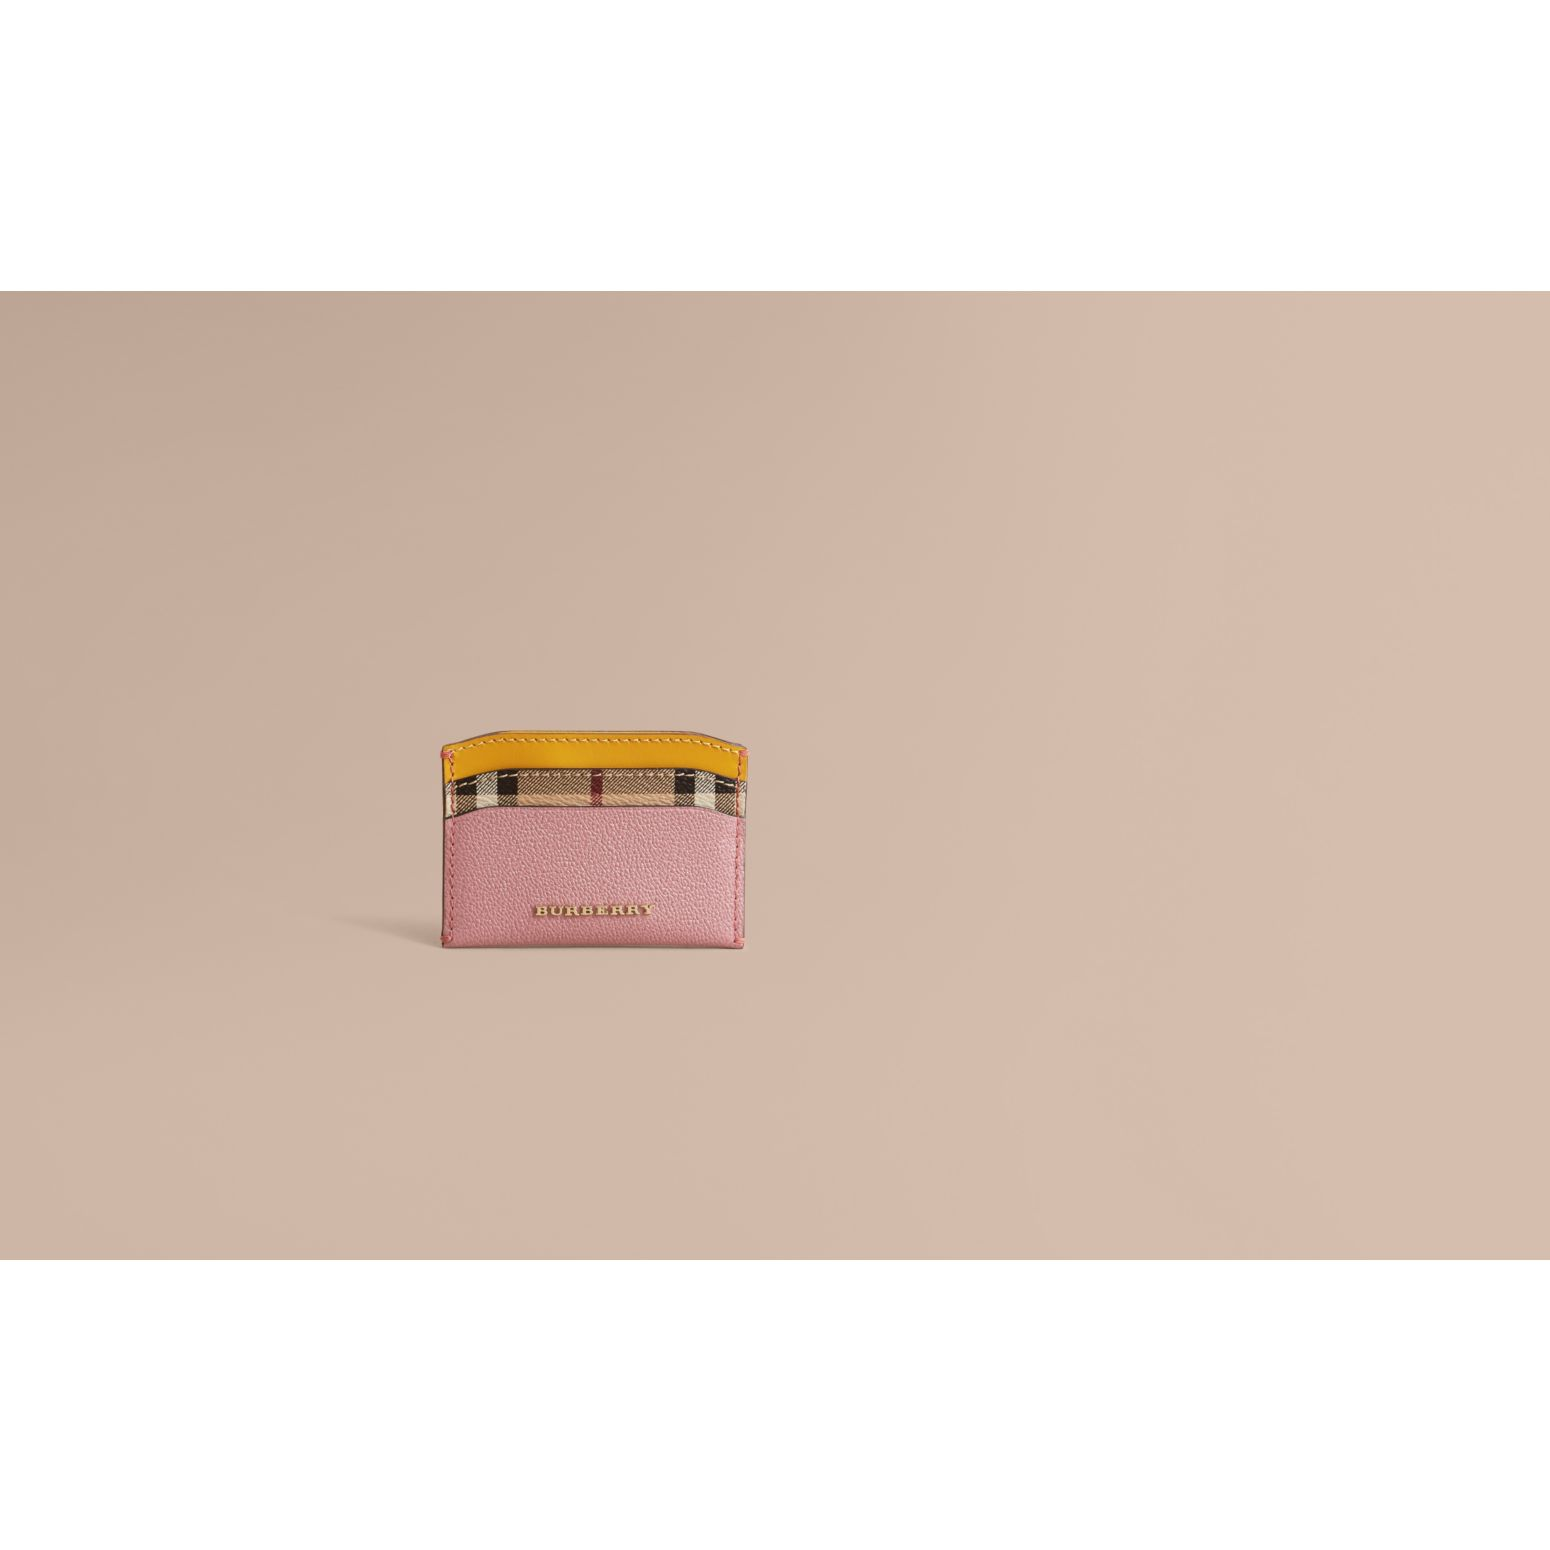 Colour Block Leather and Haymarket Check Card Case in Dusty Pink / Multi - Women | Burberry - gallery image 2